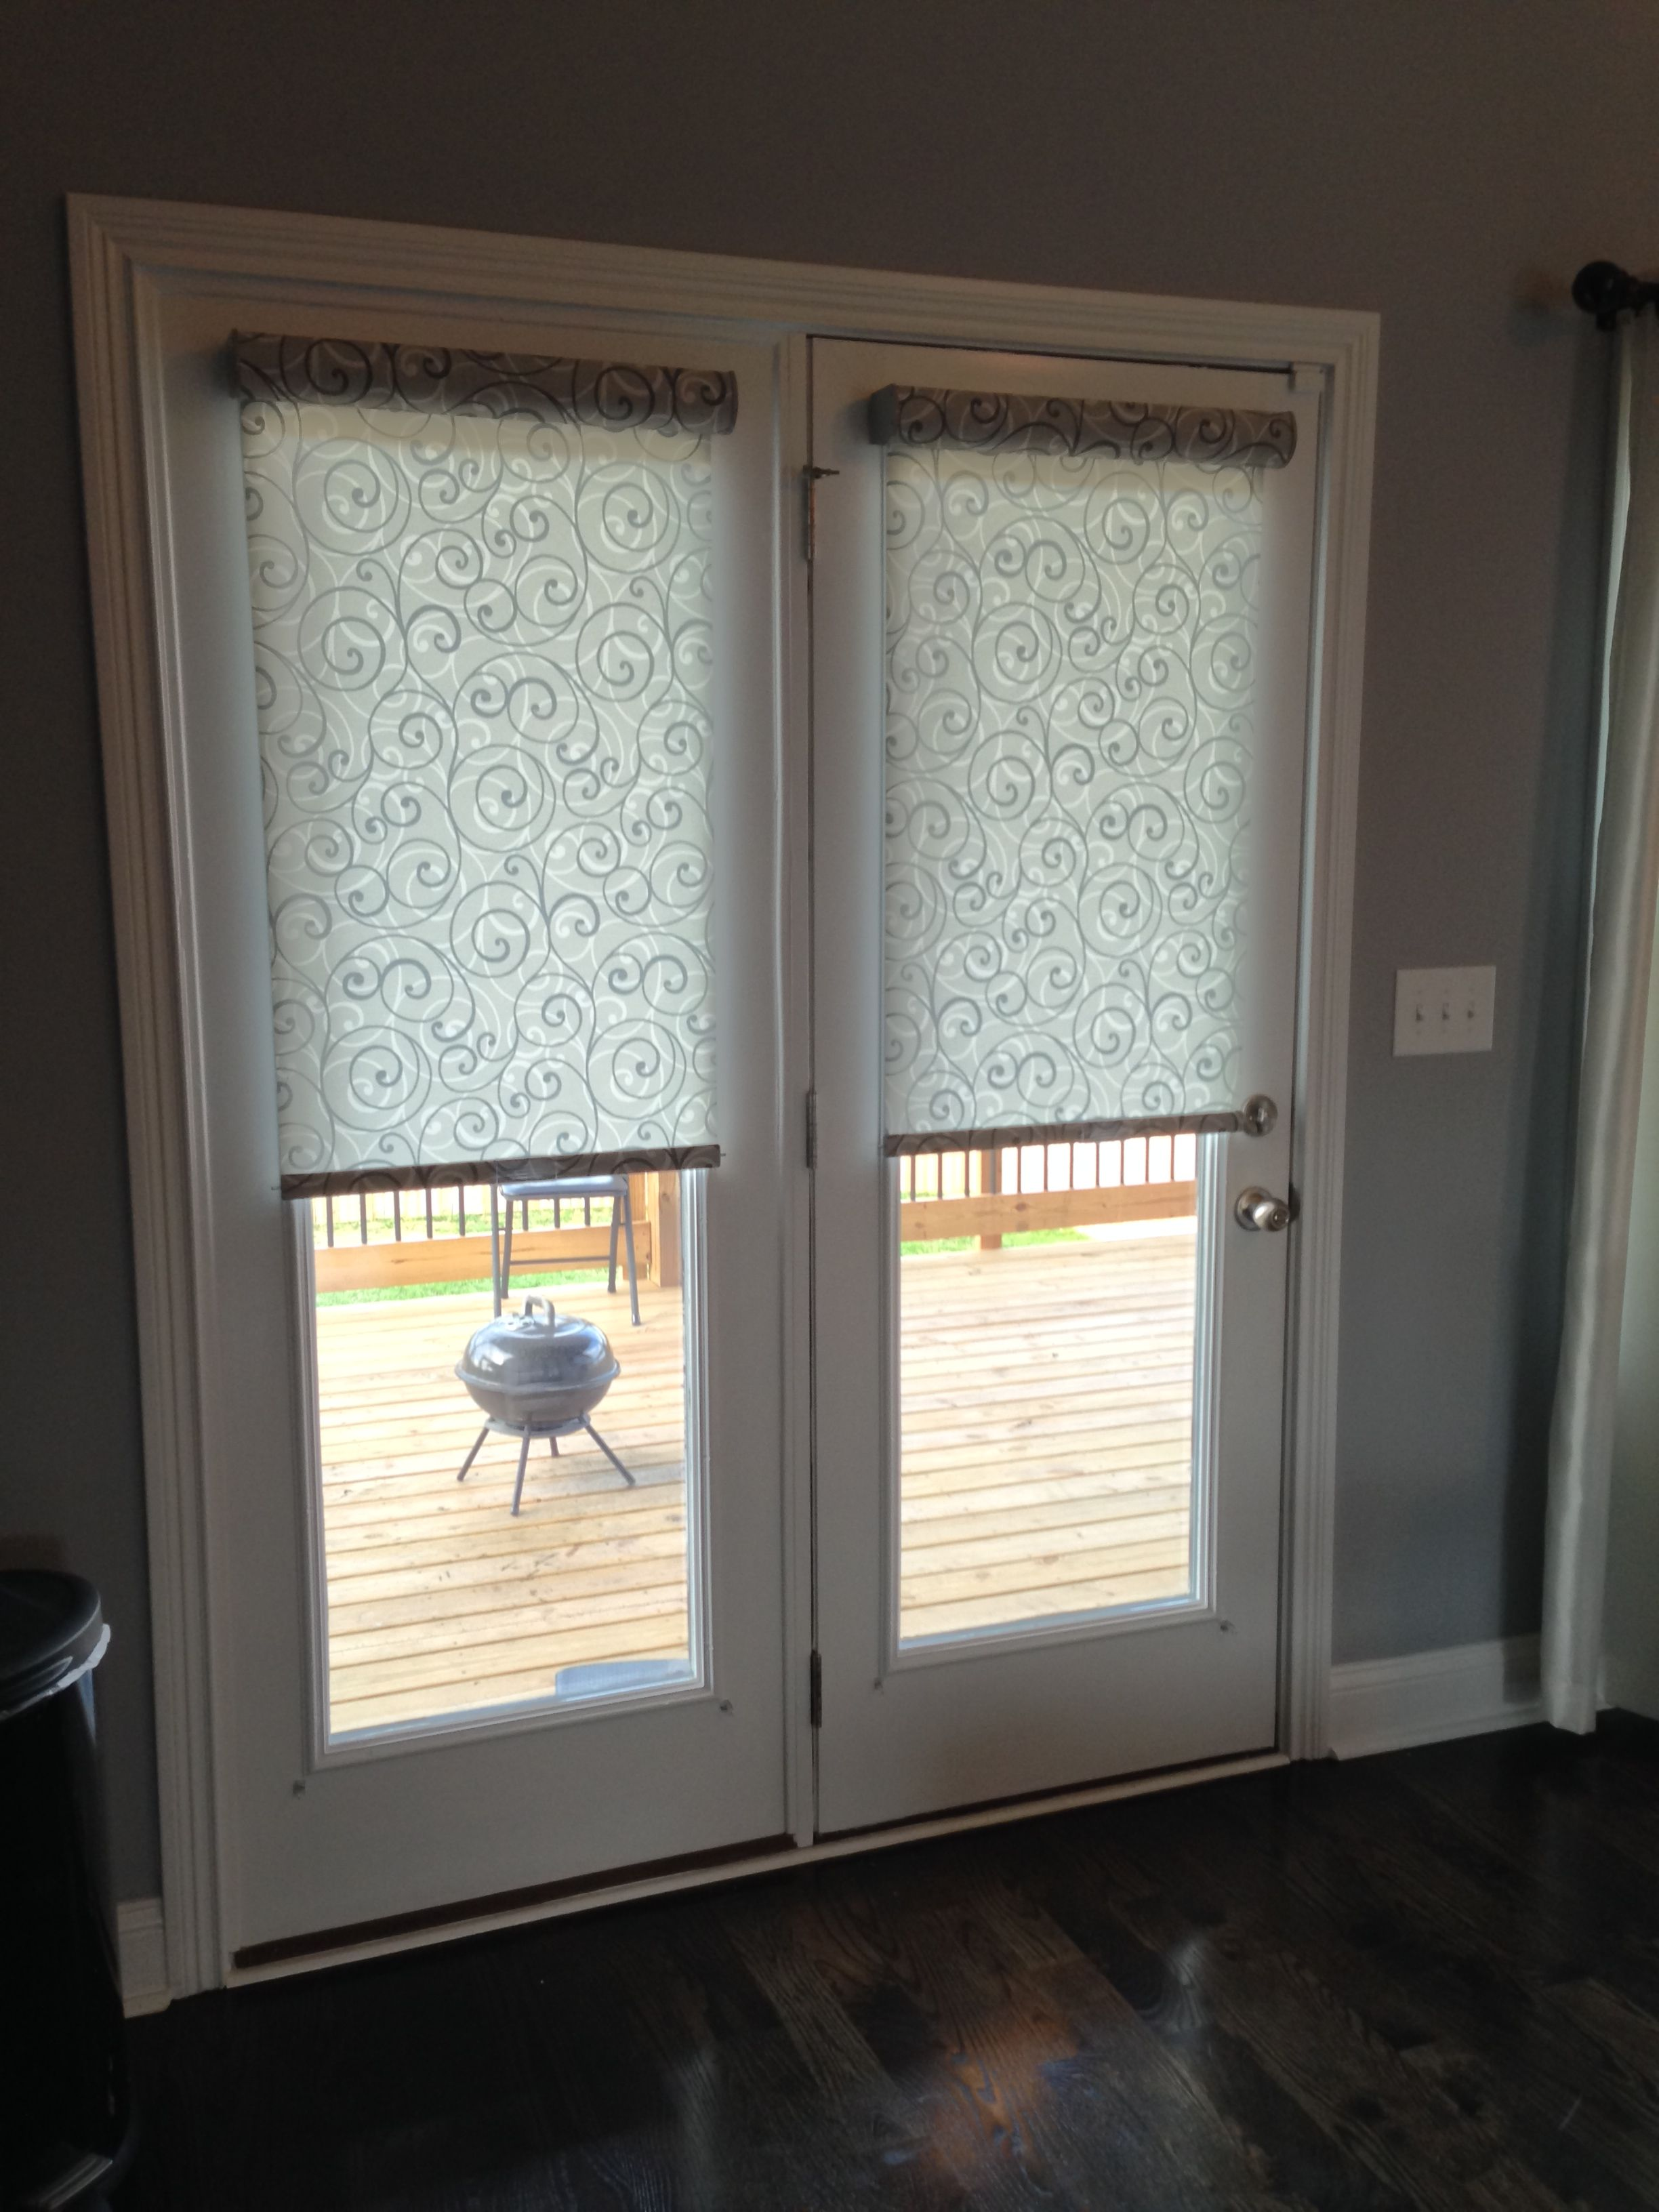 Diy Roman Shades For French Doors Roller Shades Ideas For The French Doors Pinterest